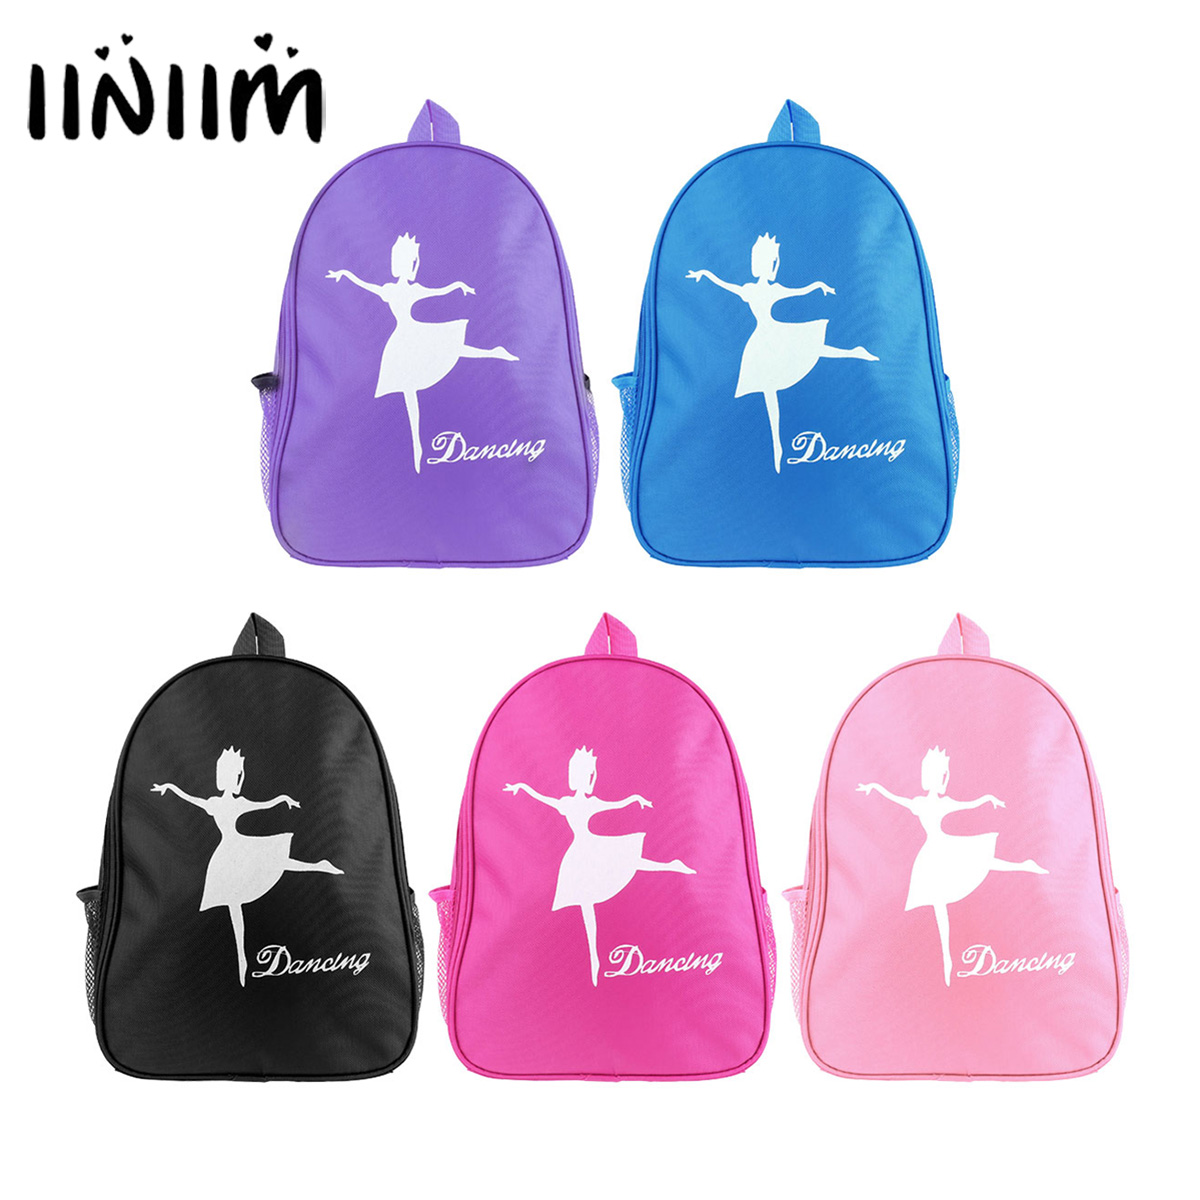 iiniim Kids Girls Lovely Fashion Ballet Dance Bag Students School Backpack Ballet Dancing Girl Print Ballerina Shoulder Bag